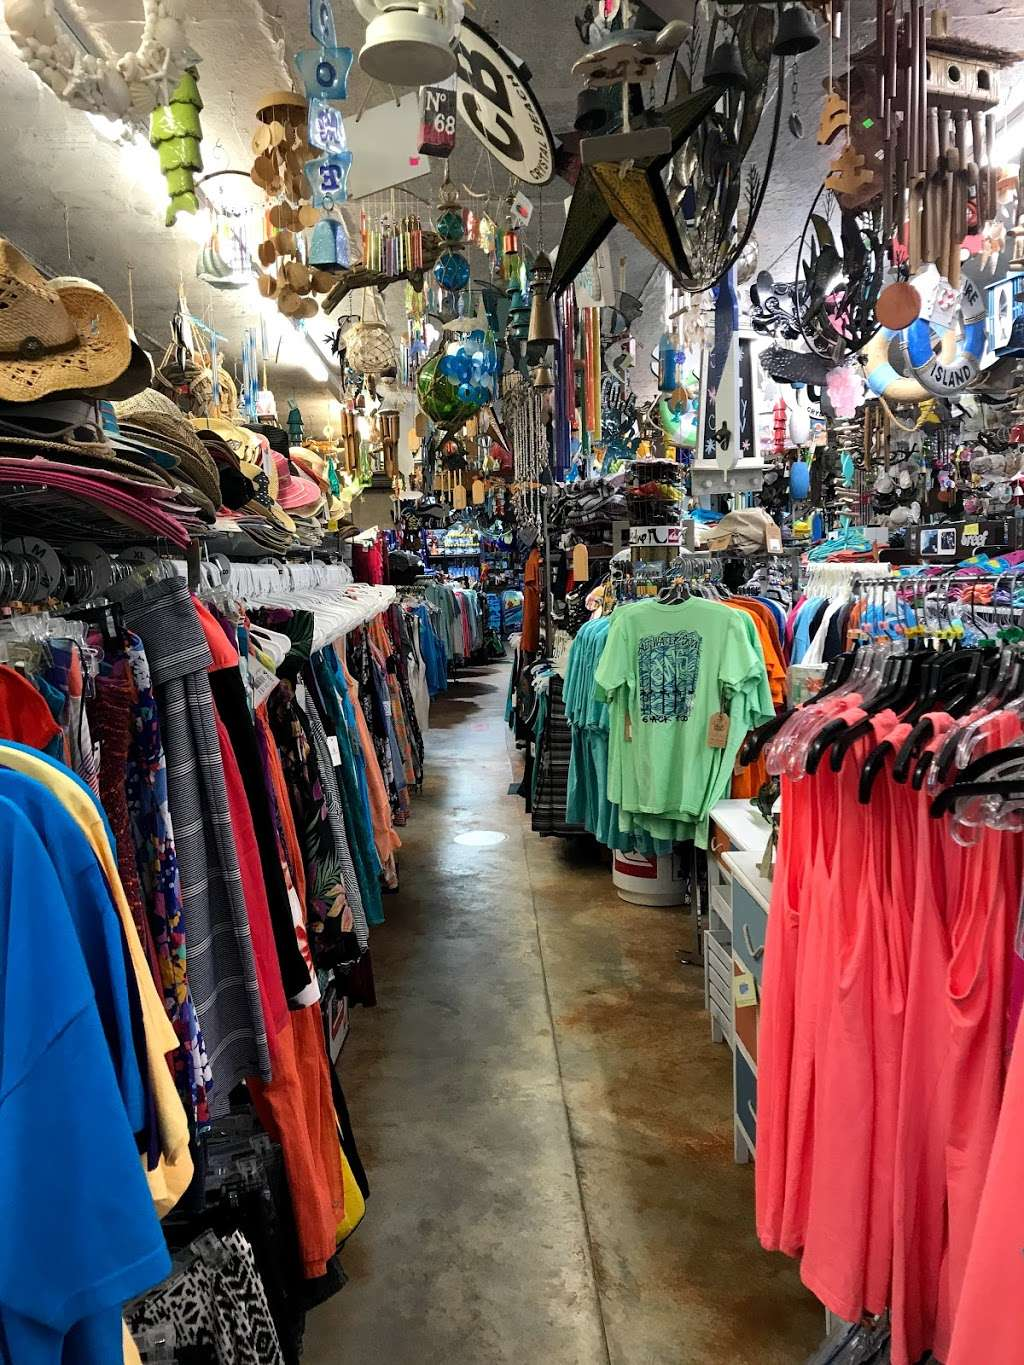 Latitude 29.2 Surf Shop - clothing store  | Photo 3 of 10 | Address: 1406 State Hwy 87, Crystal Beach, TX 77650, USA | Phone: (409) 684-0594